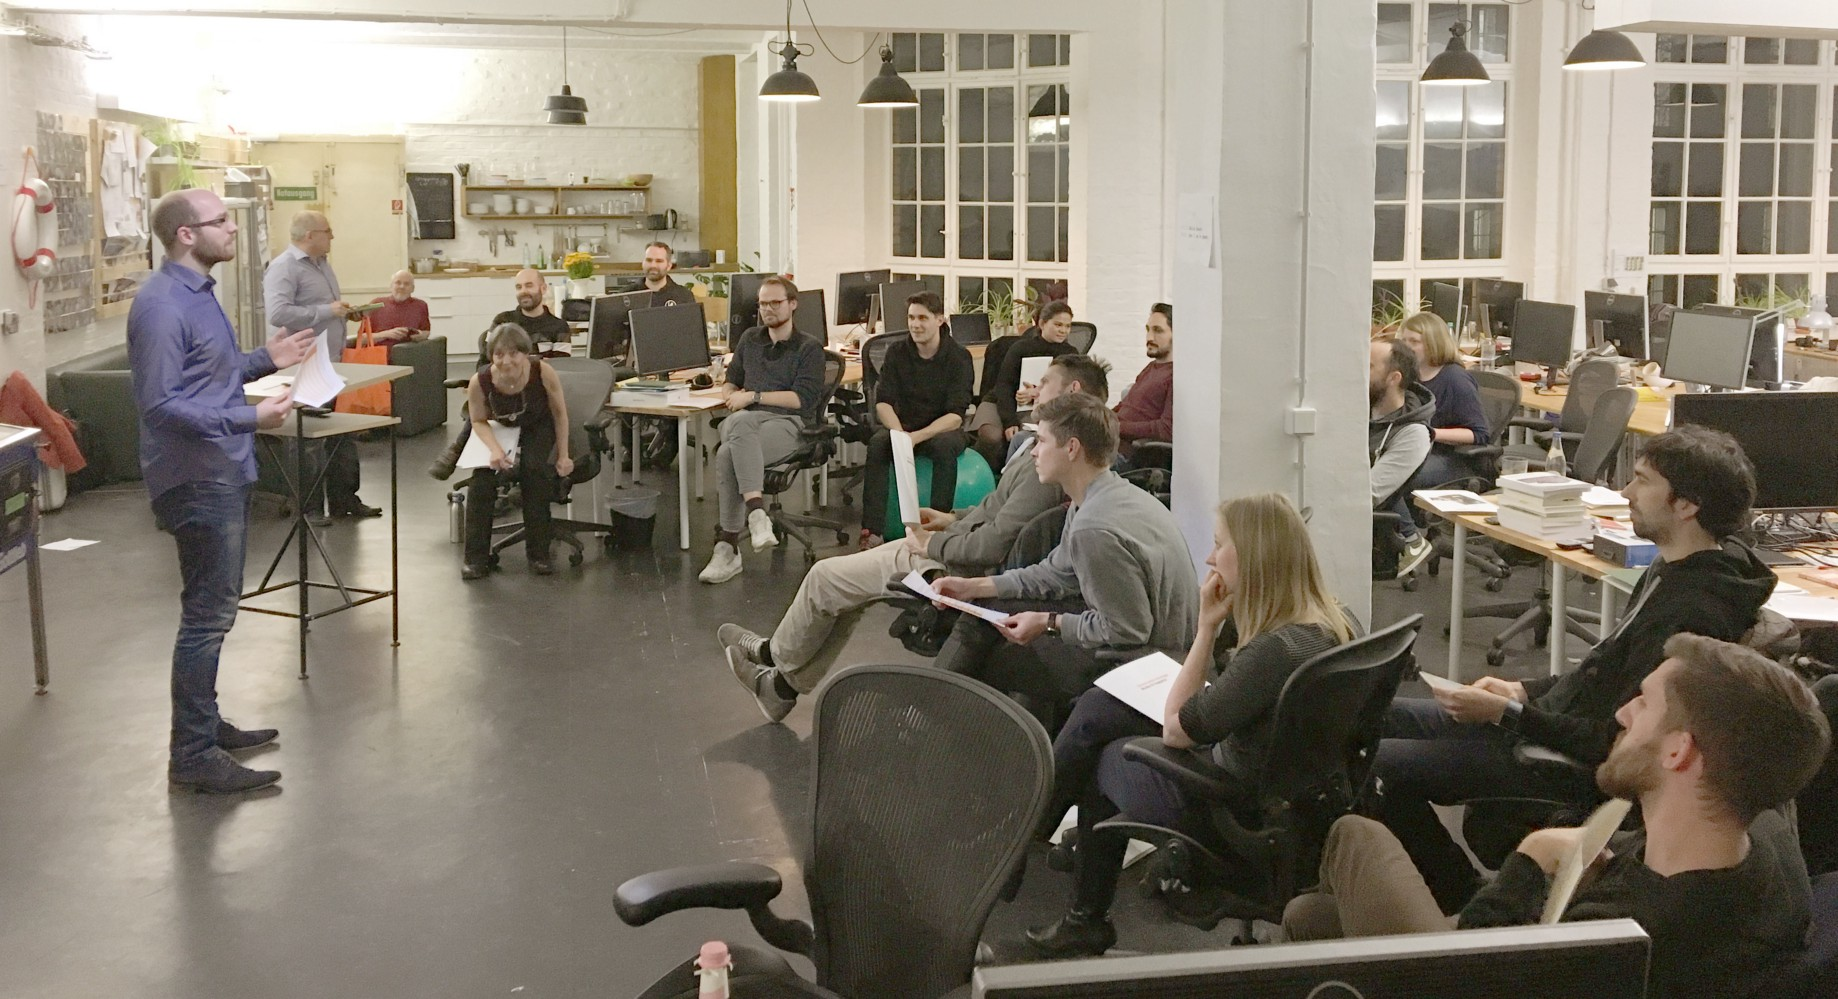 5 Things We Learned From Our Public Speaking Class - daliaresearch